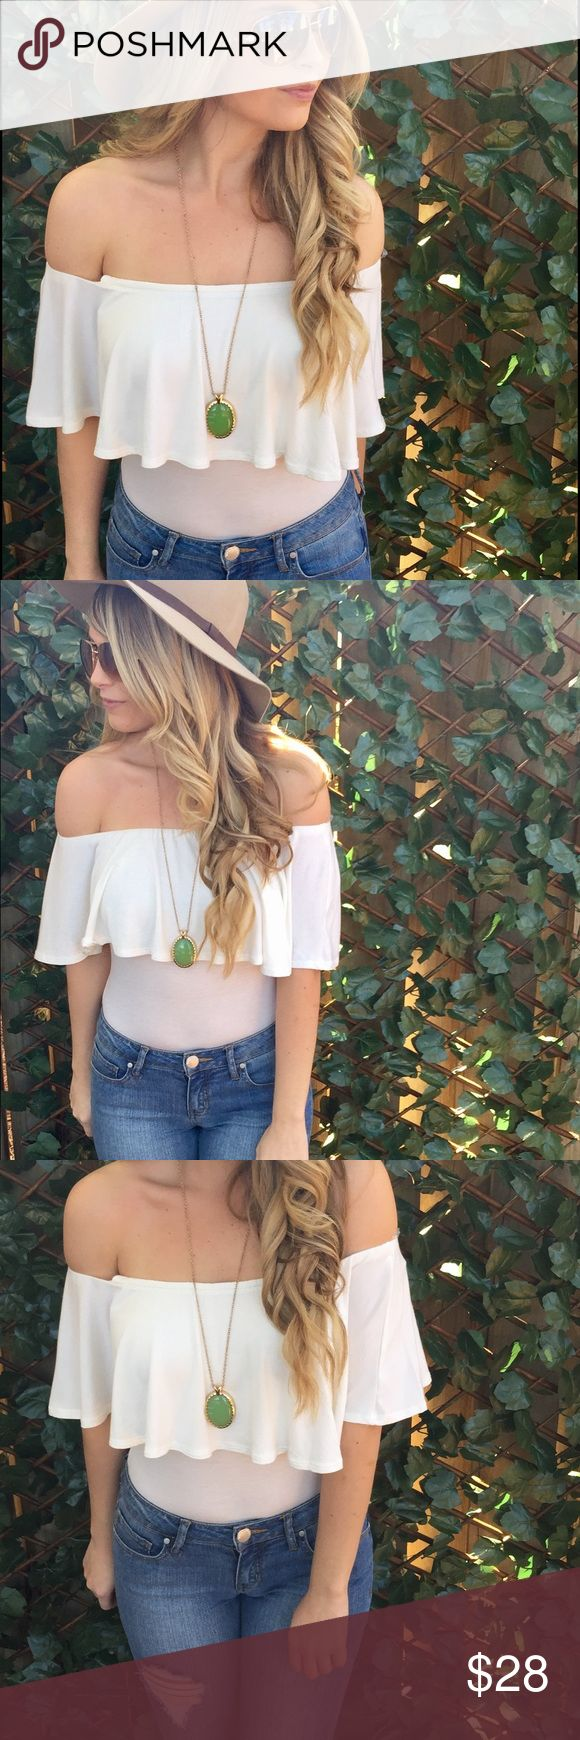 White Bodysuit This bodysuit features a off the shoulder look, button snaps and a flounce look.   -wearing size small Tops Blouses